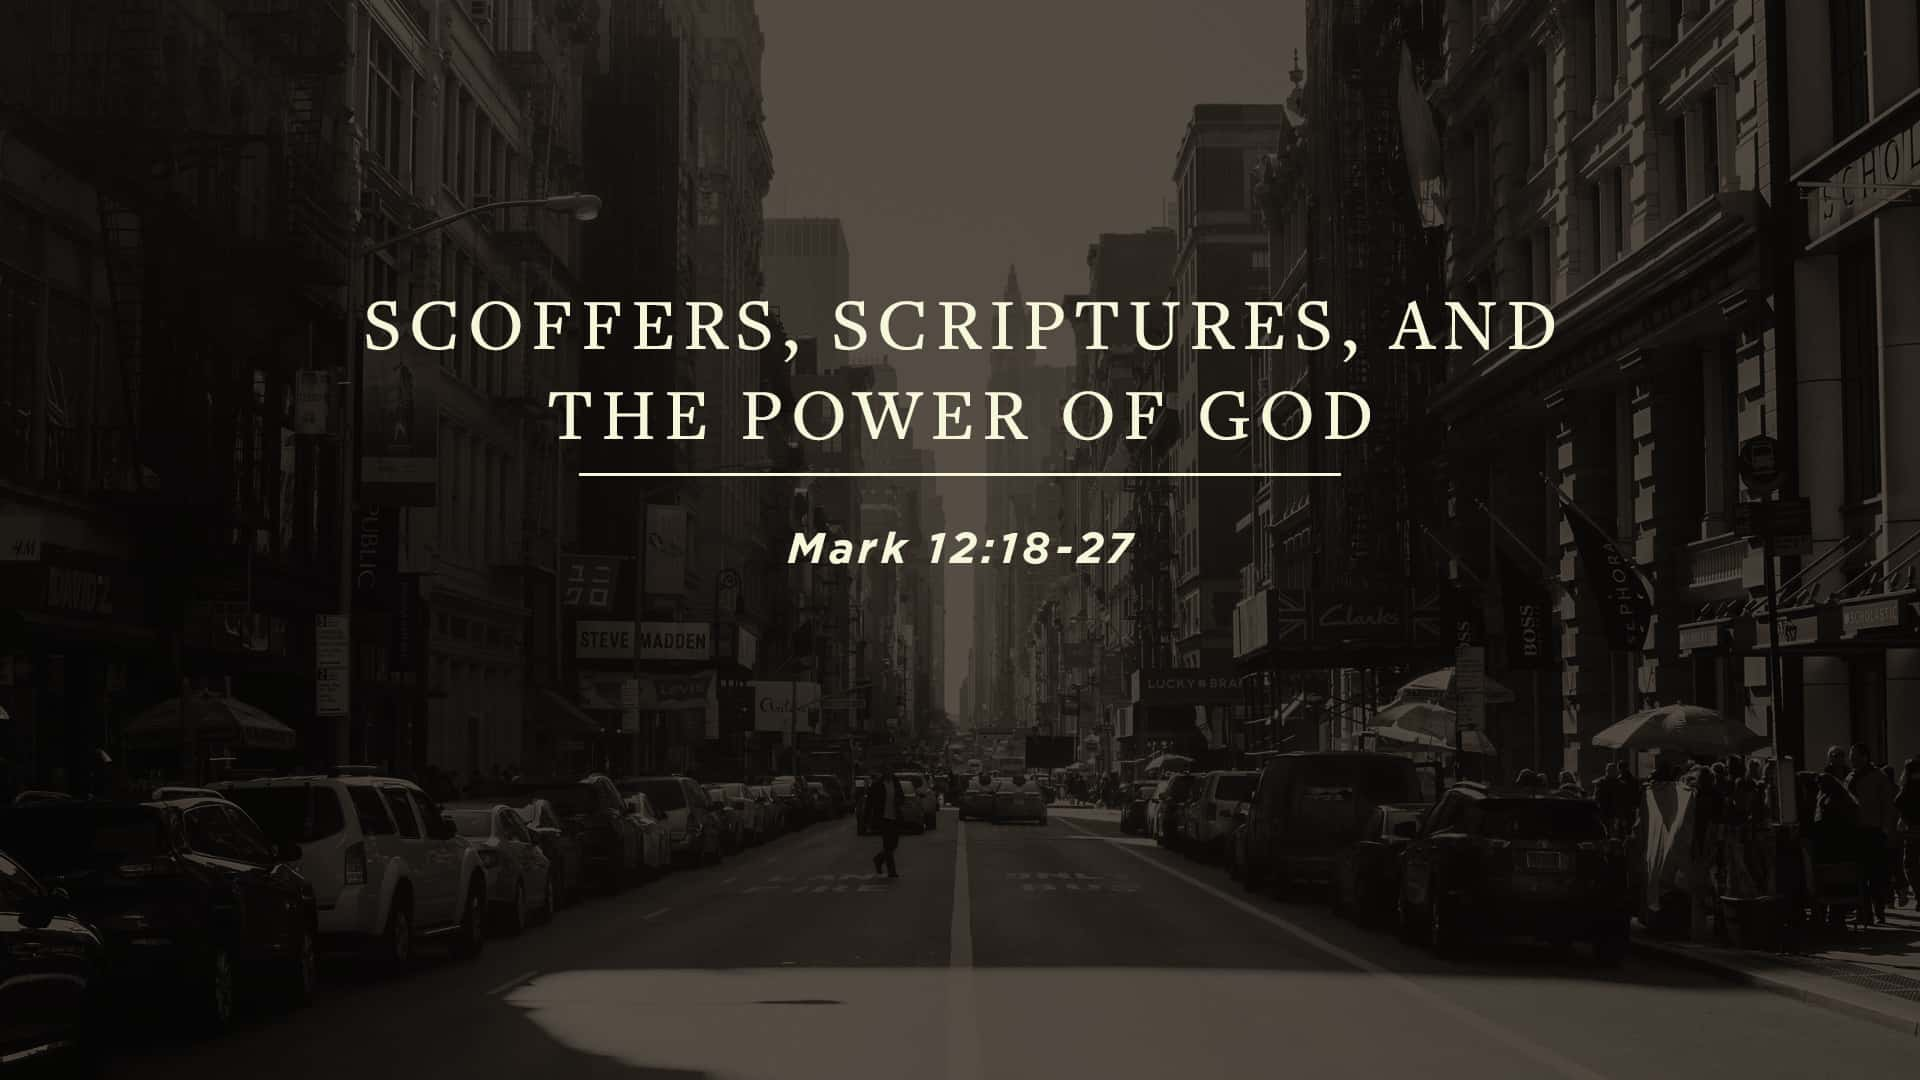 Scoffers, Scriptures, and the Power of God